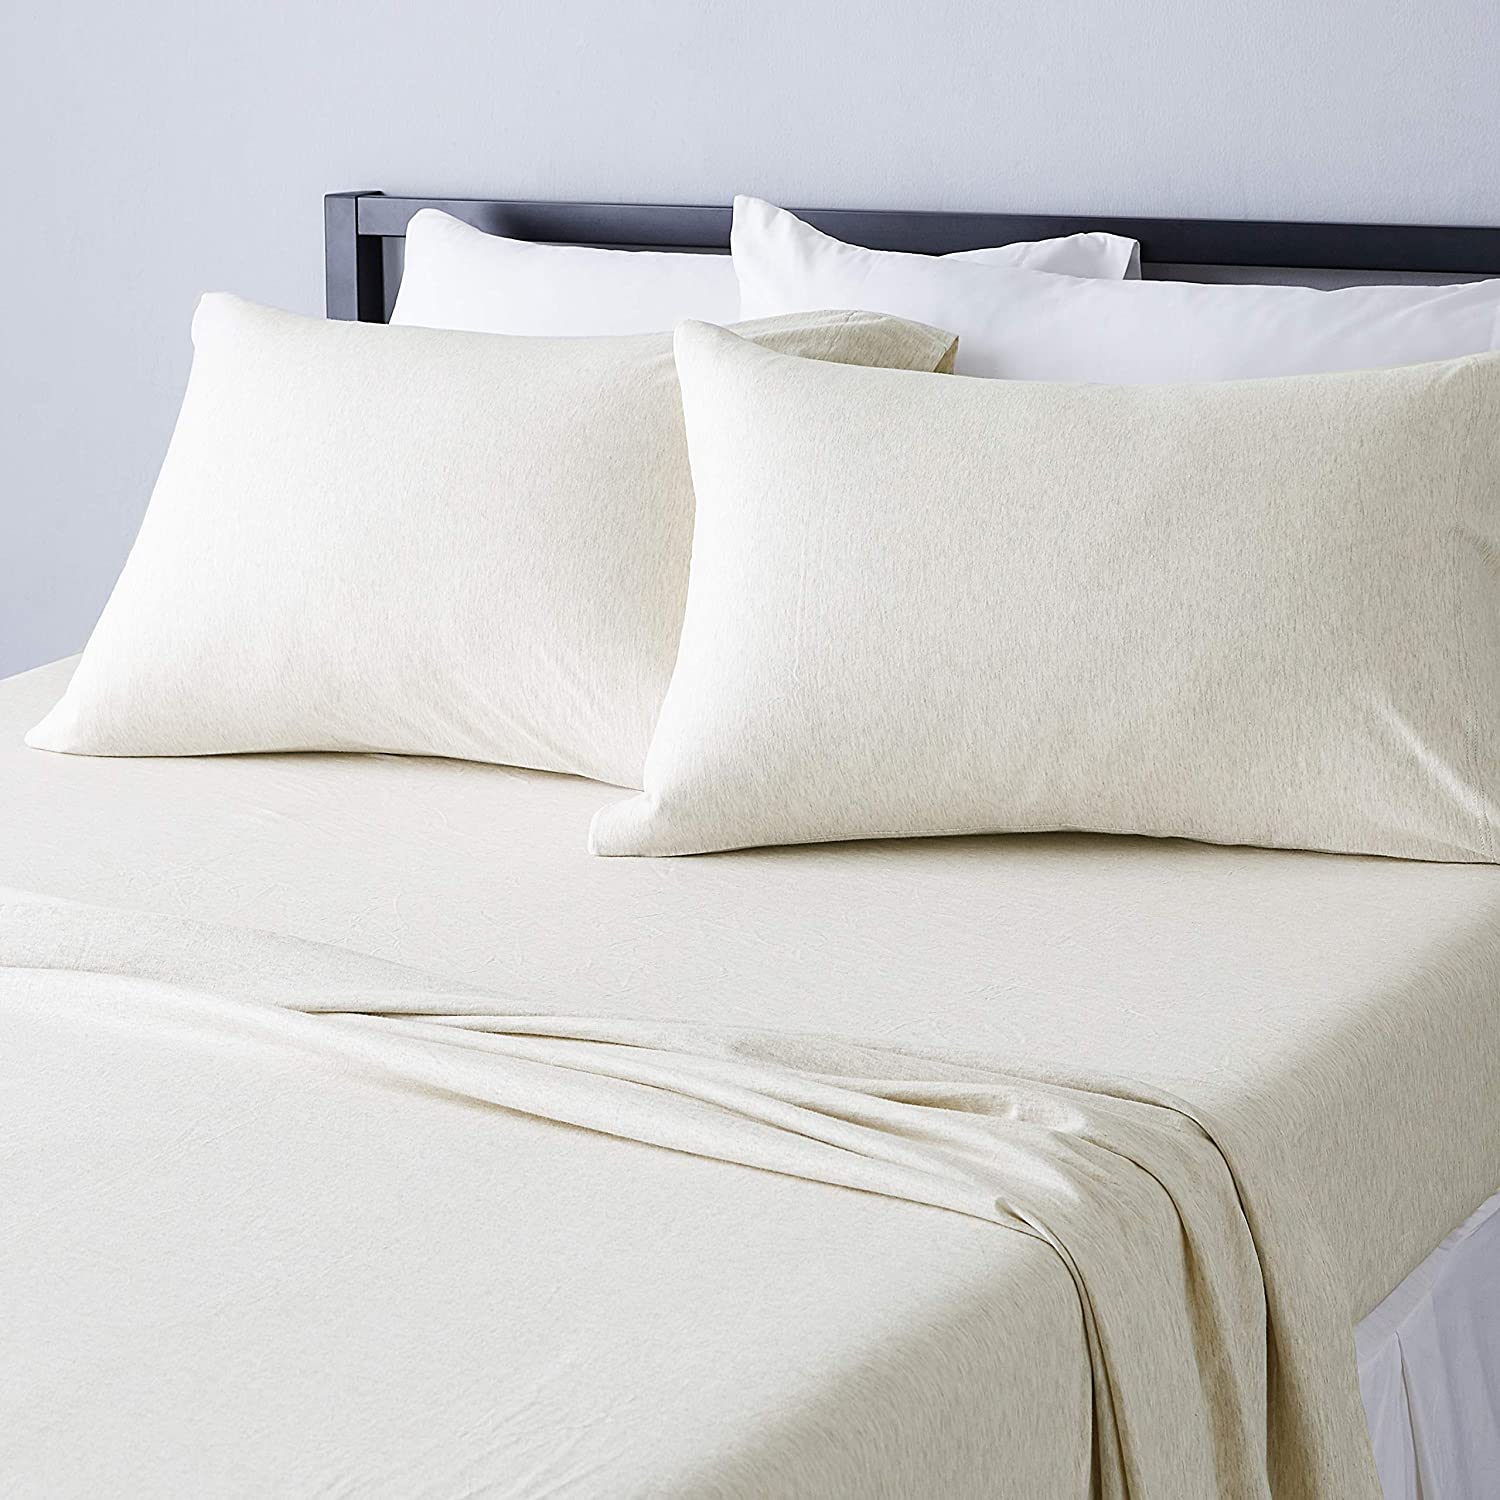 Lot of 10  FLAT bed sheet  Queen SIZE NO PILLOW COVER COLOR WHITE  OR BEIGE